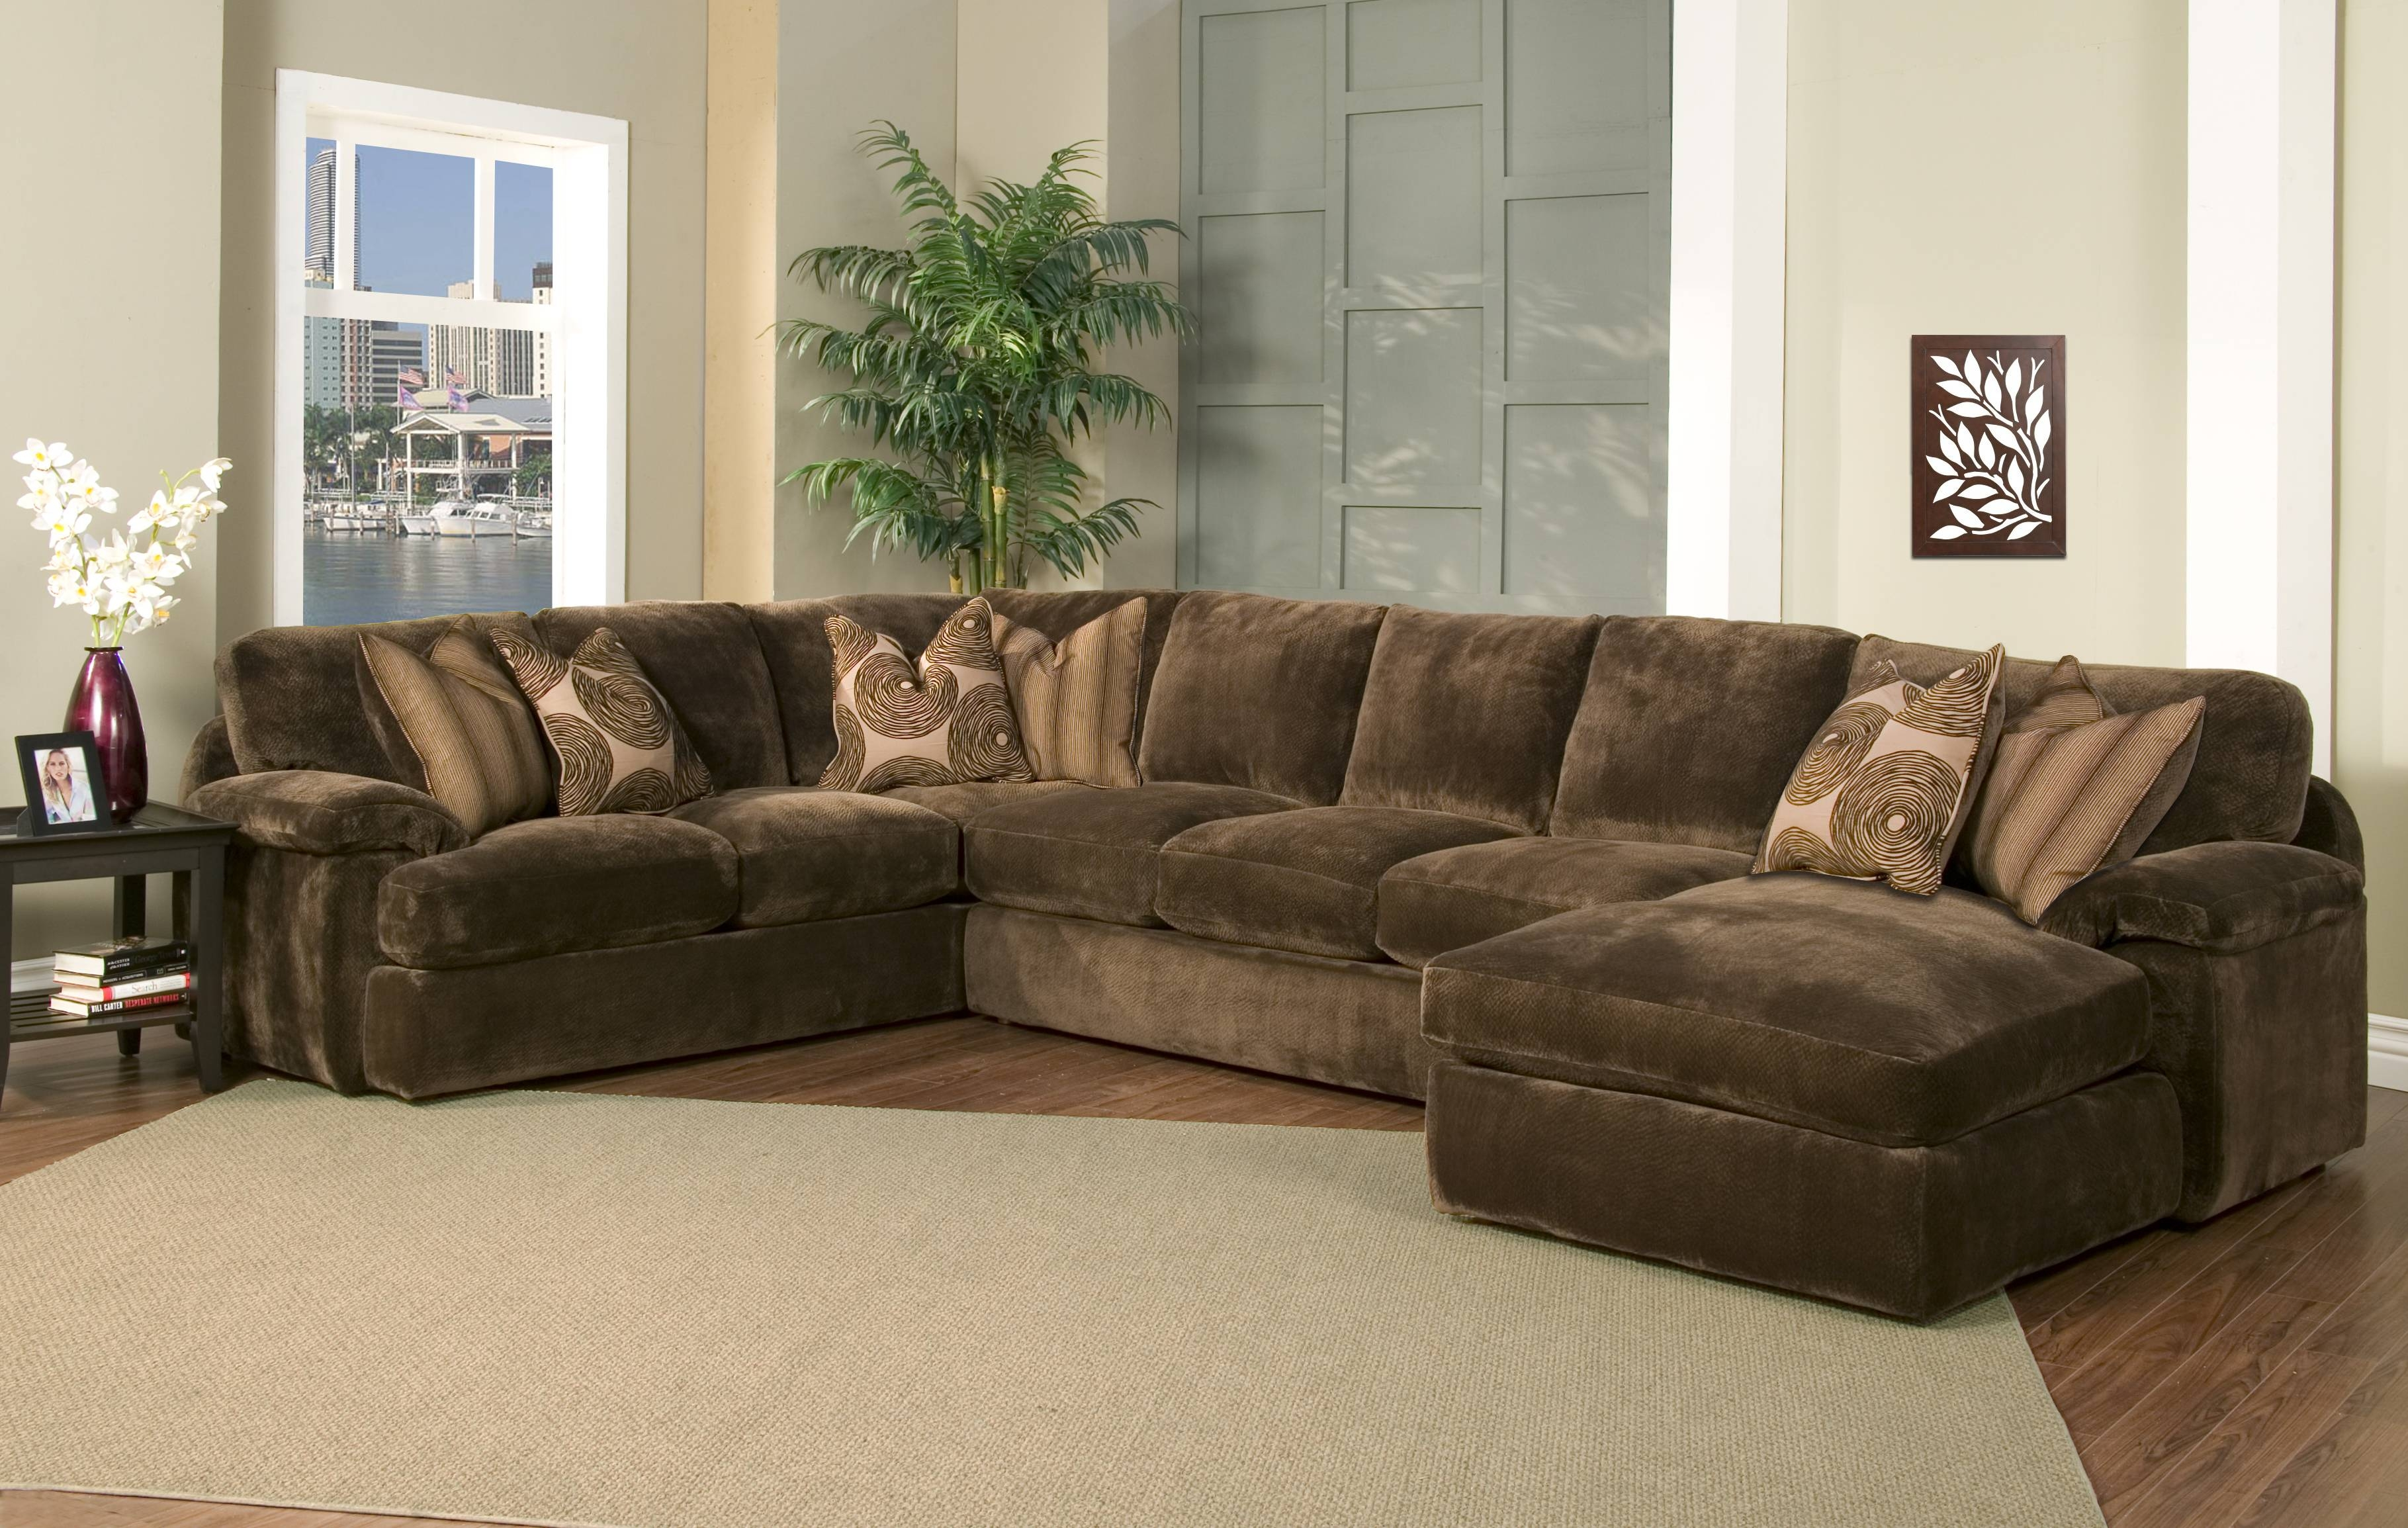 Robert Michaels Sofas And Sectionals throughout Down Filled Sofa Sectional (Image 14 of 25)